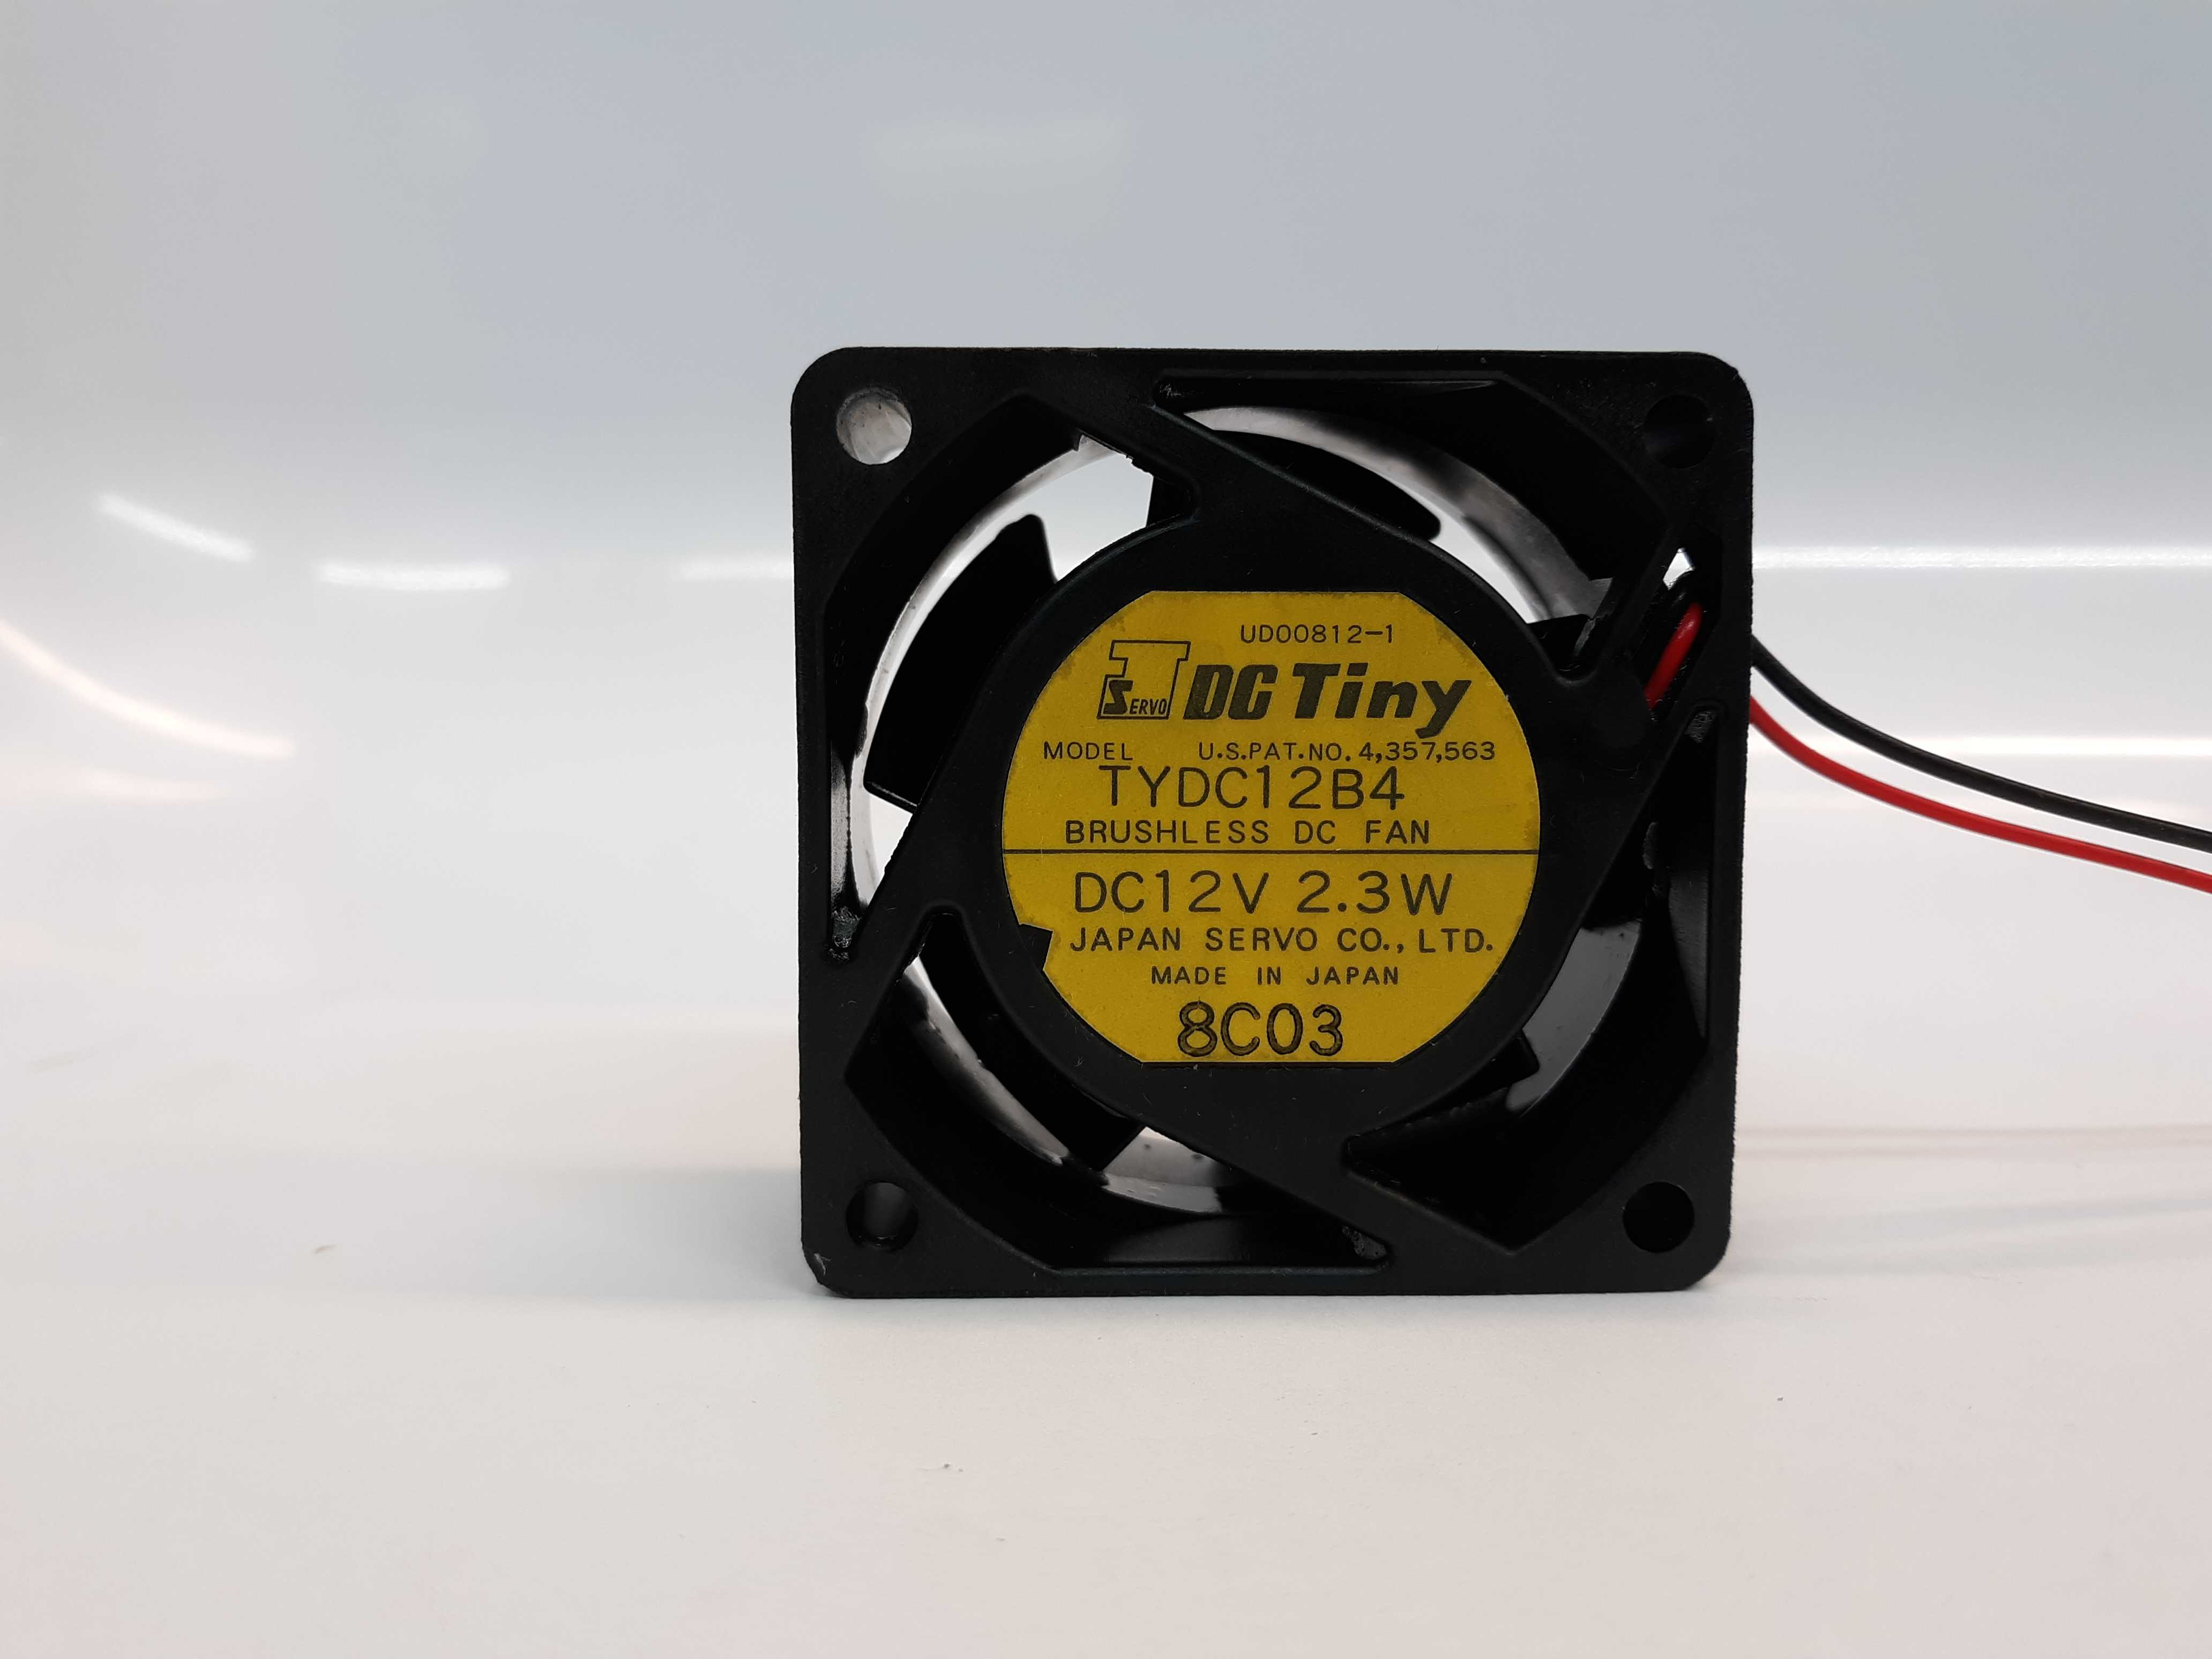 Servo DC Tiny TYDC12B4 Brushless DC Fan 12 VDC 2.3VW